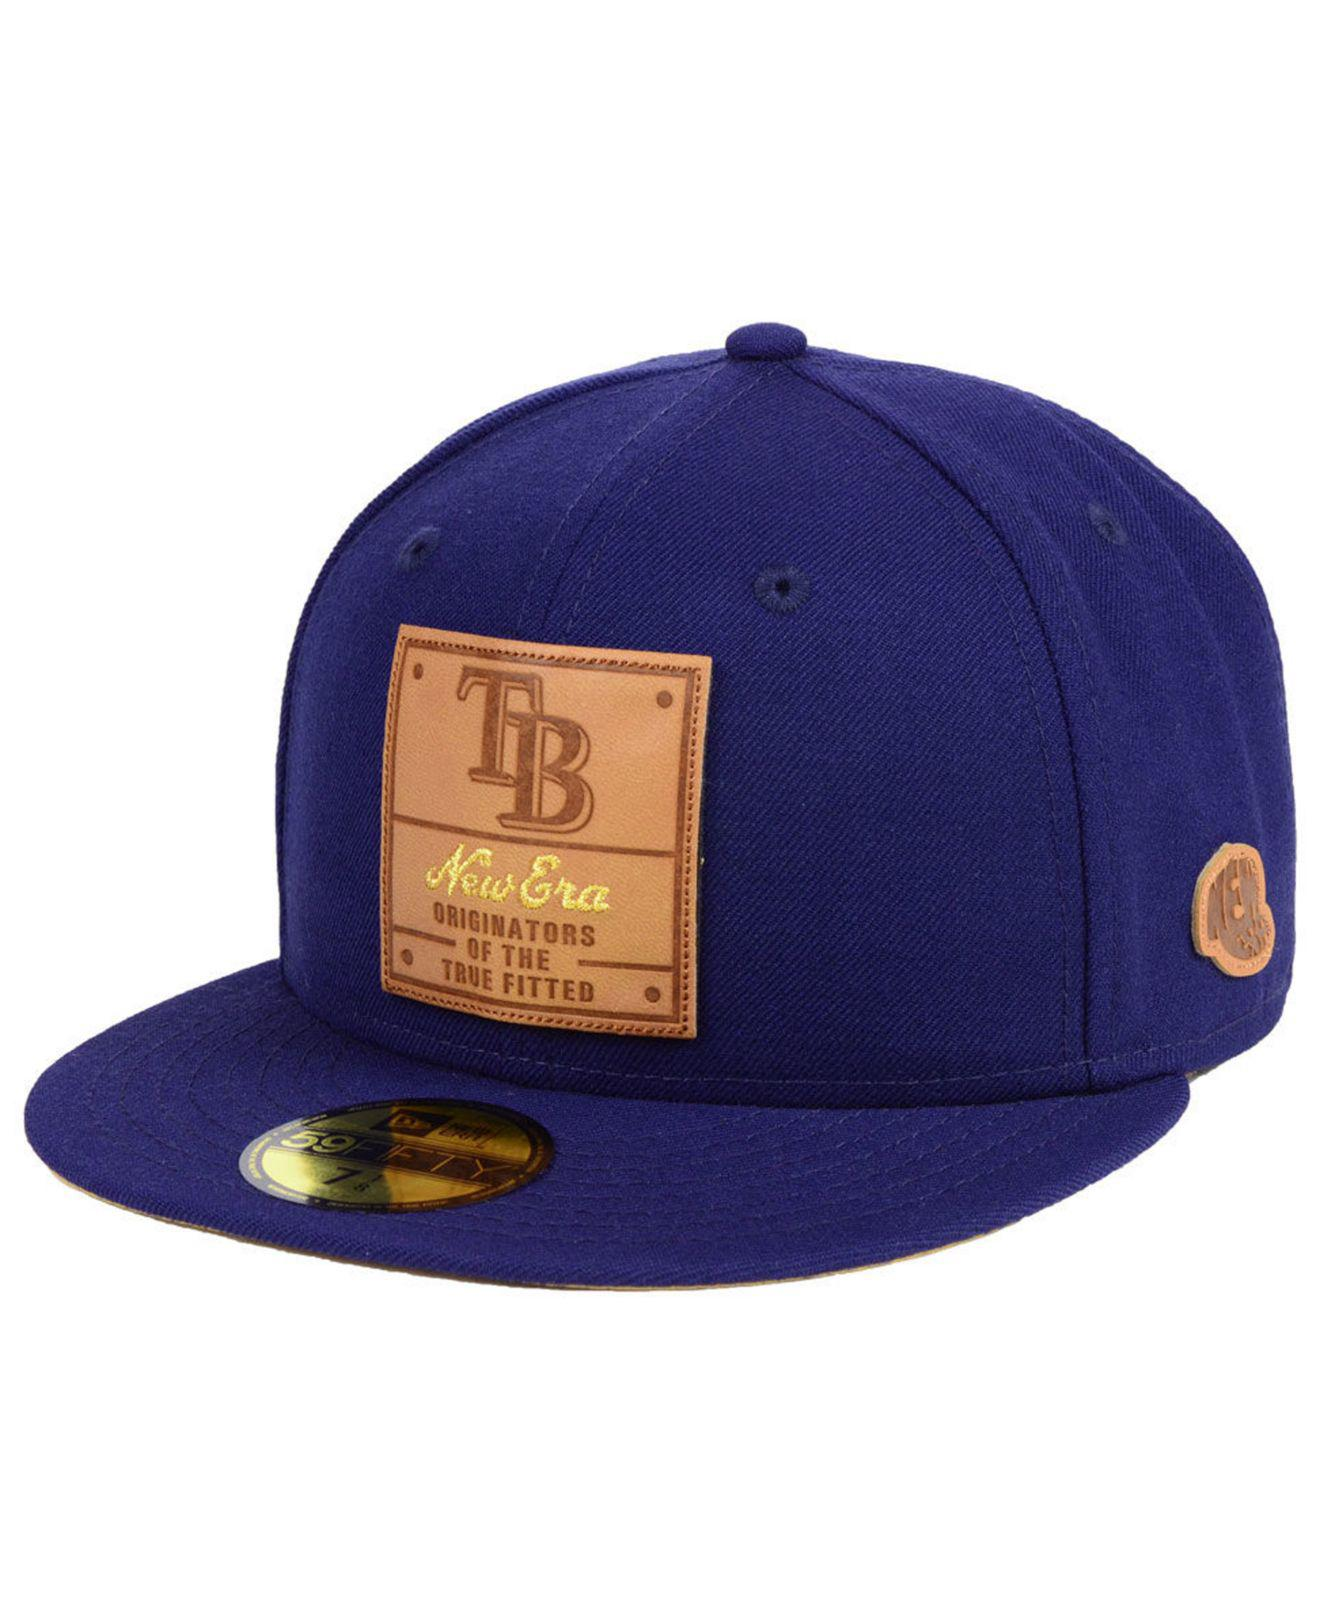 save off 61aa5 cf5b0 KTZ. Men s Blue Tampa Bay Rays Vintage Team Color 59fifty Fitted Cap